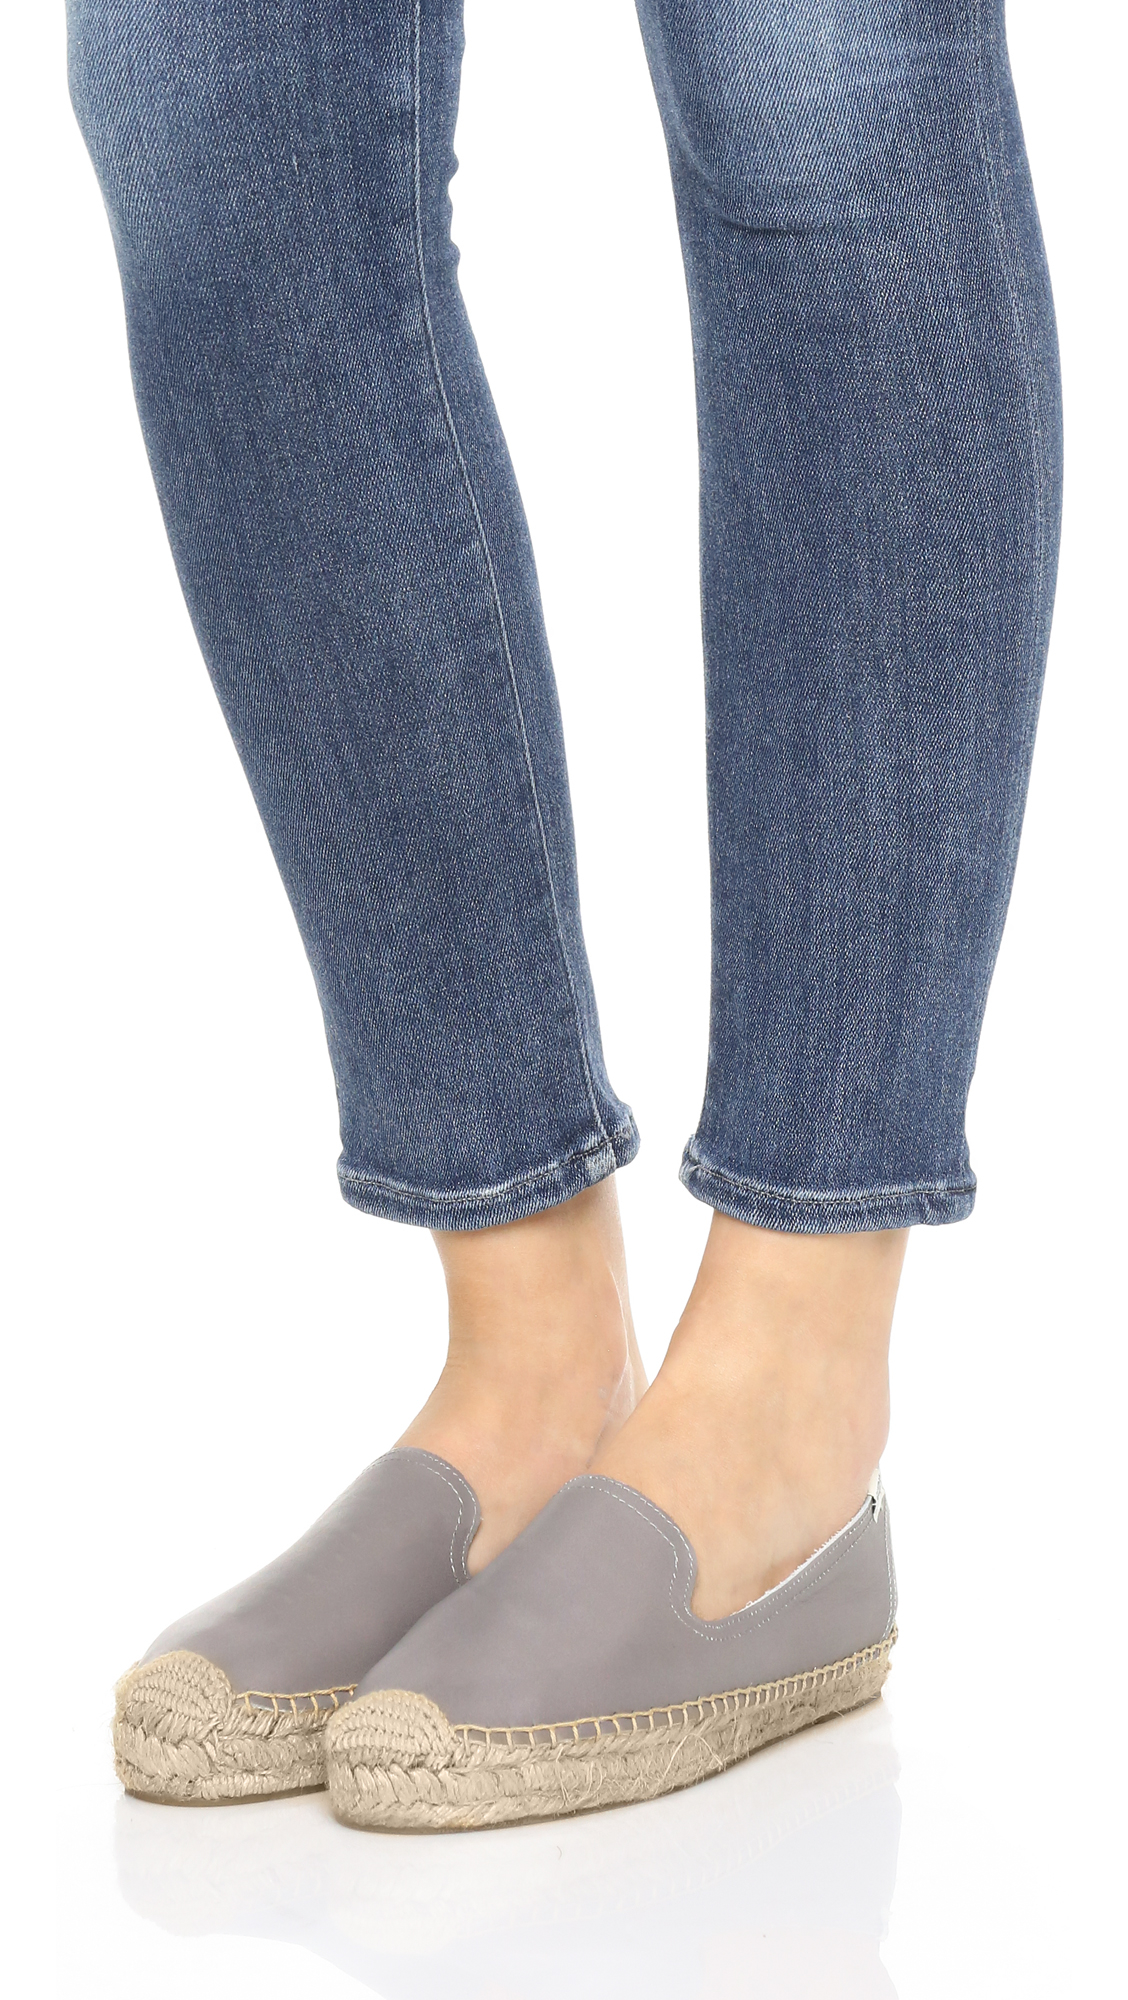 2ed6a8a94414 Lyst - Soludos Platform Leather Smoking Slippers in Gray